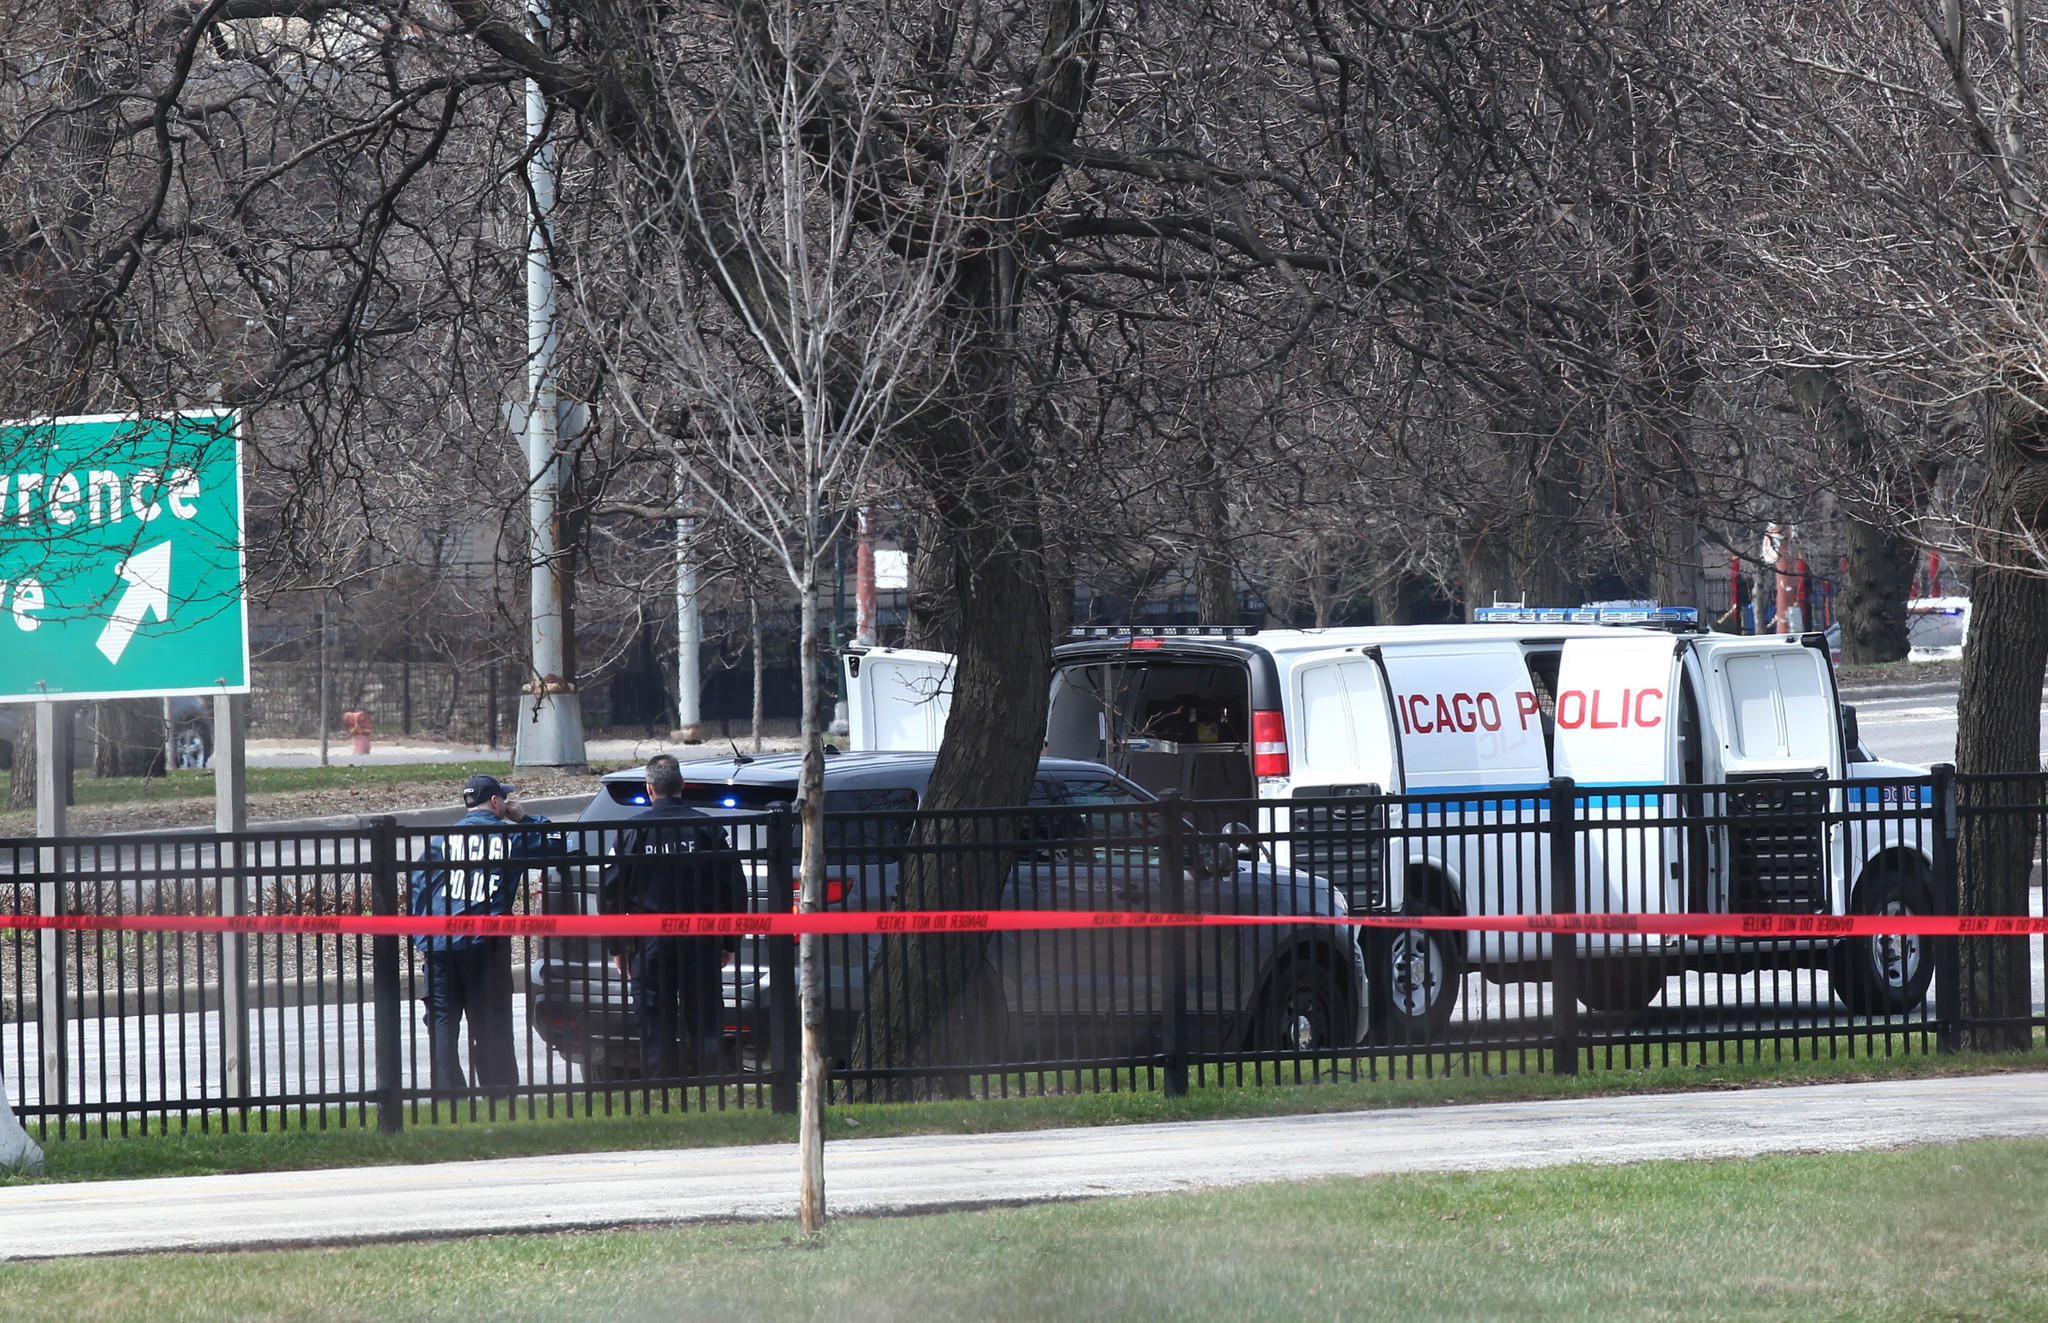 Chicago Police investigate the area along Lake Shore Drive that has been closed between the Wilson and Foster exits where a suspicious object had been found, officials said.